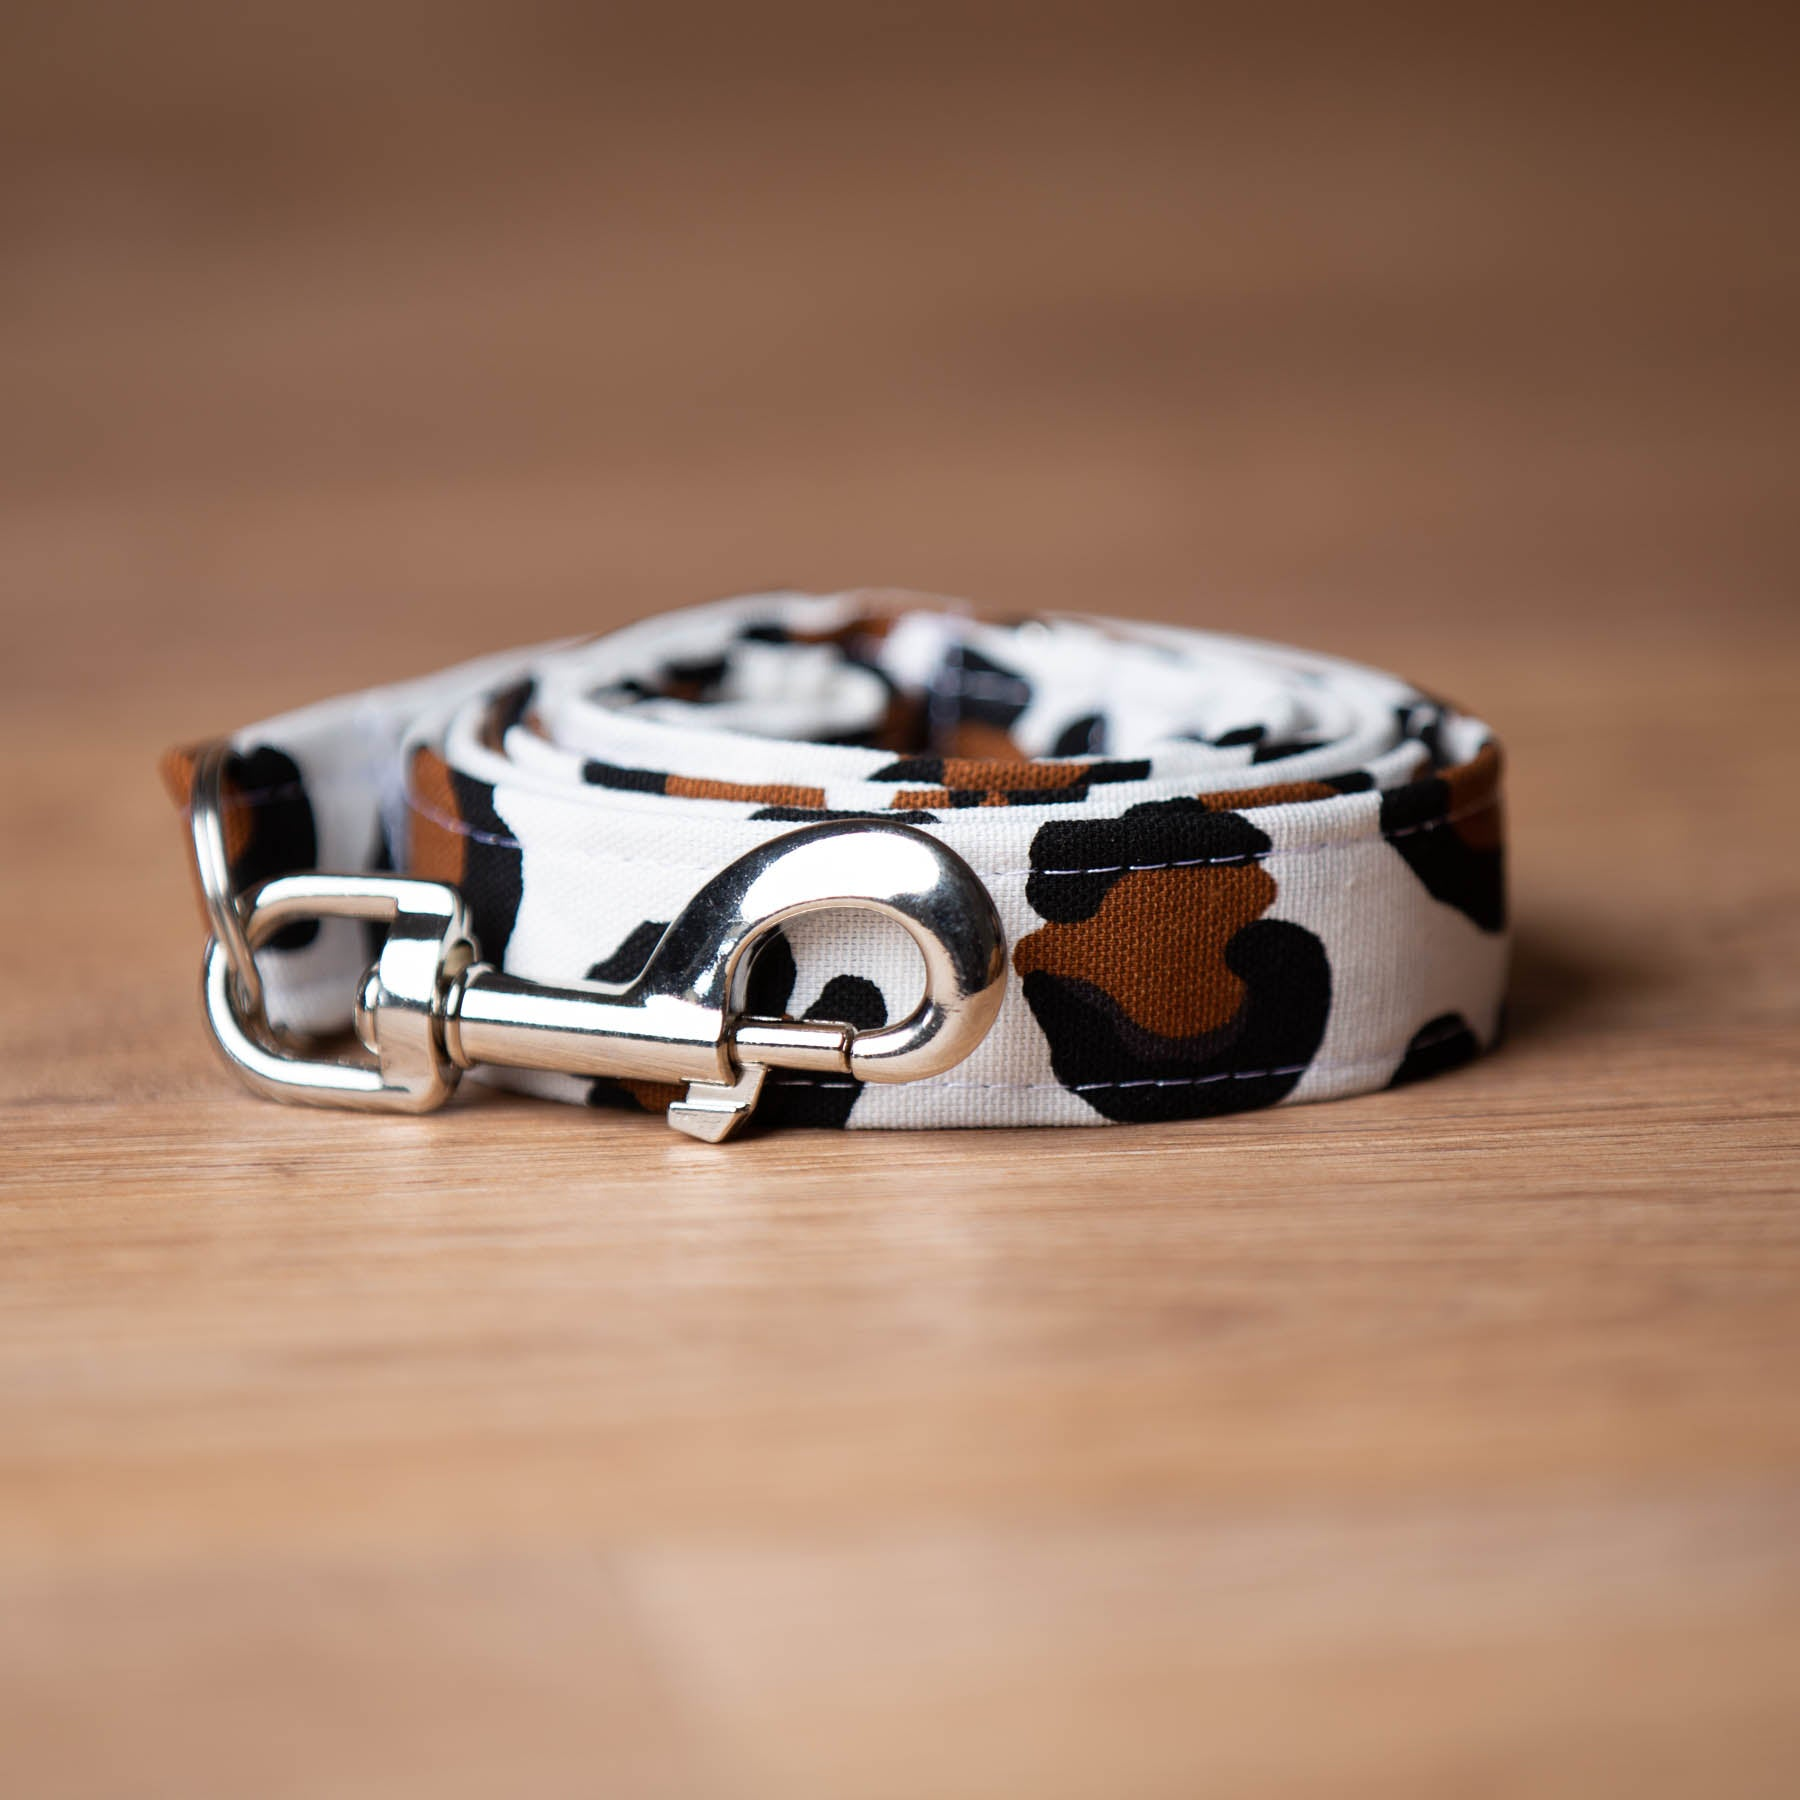 wild dog lead luxury dog apparel